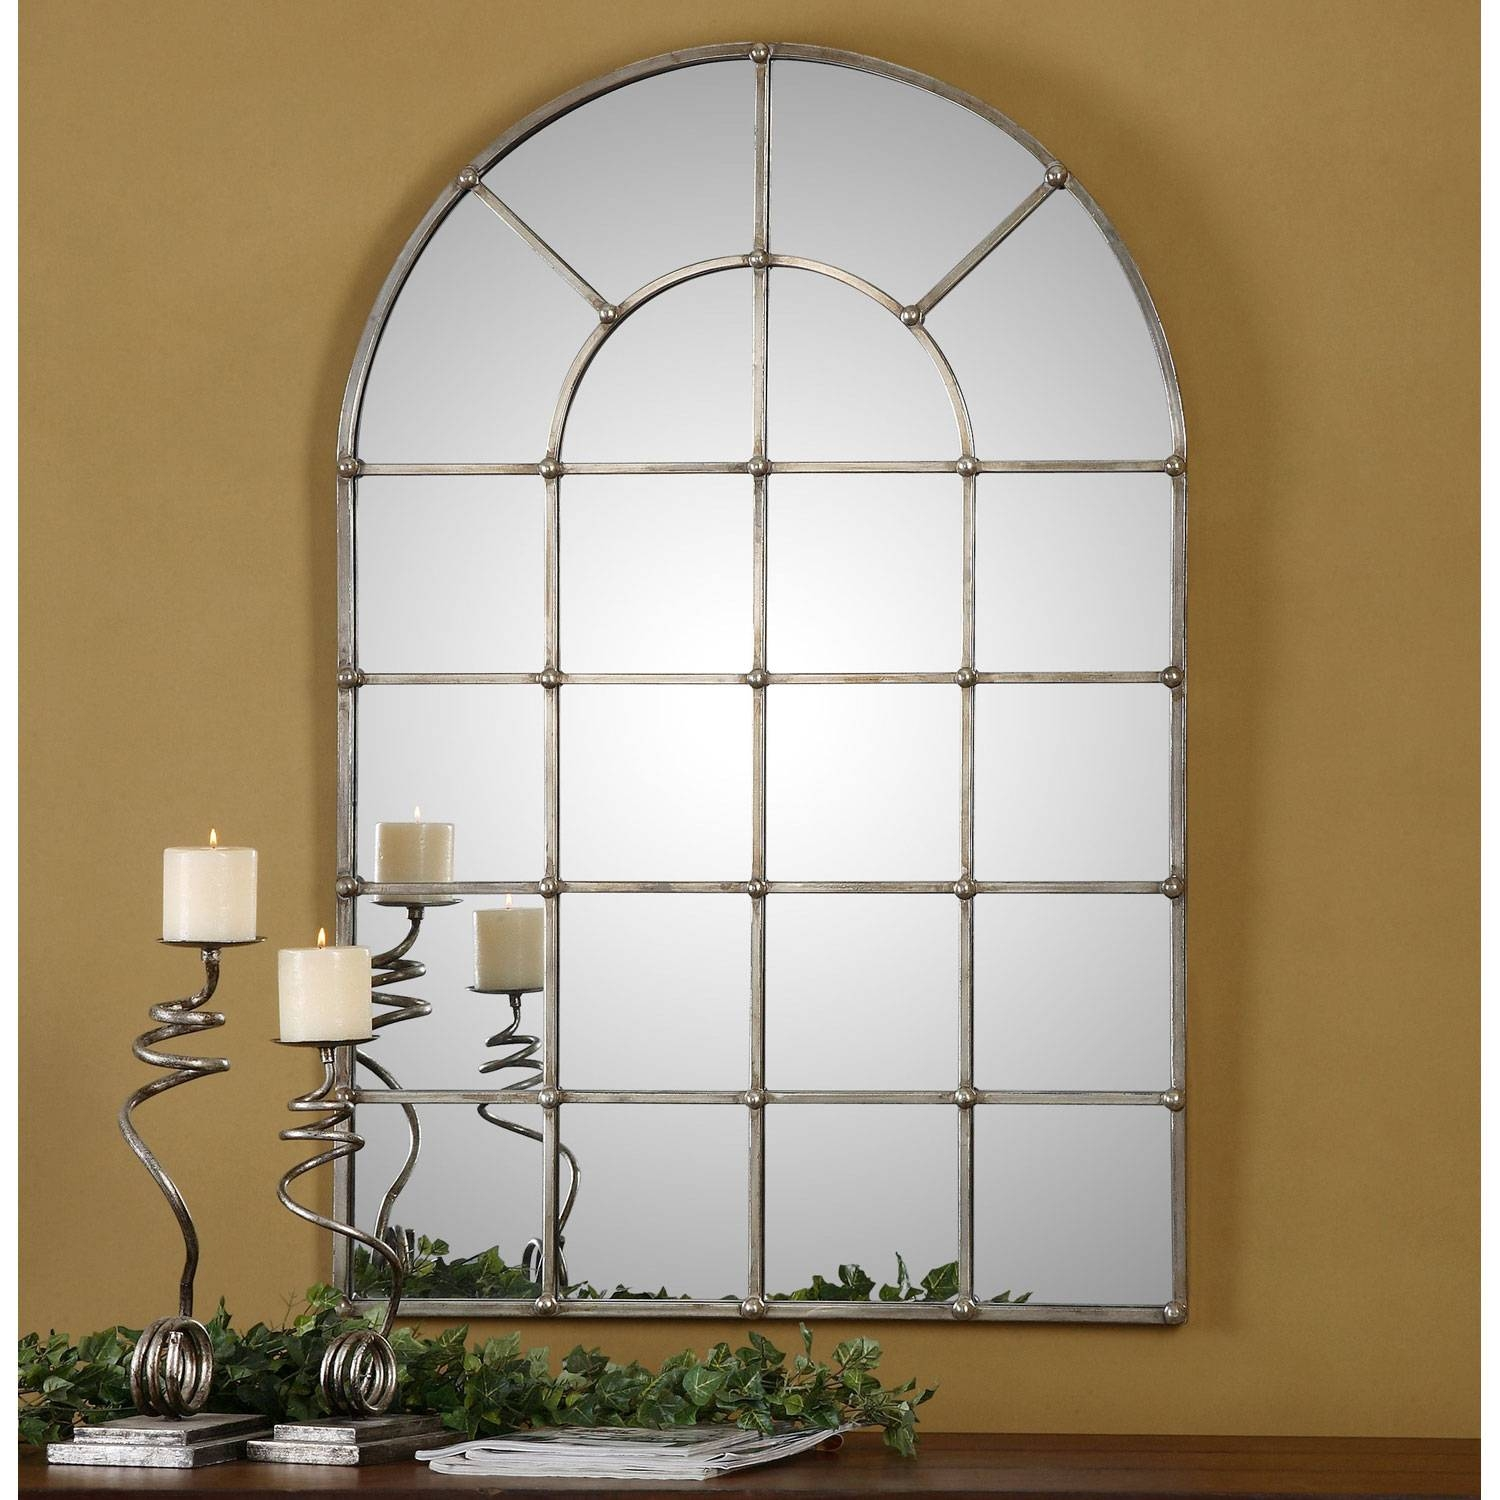 Barwell Forged Metal With Oxidized Plated Silver Arch Window with regard to Window Arch Mirrors (Image 9 of 25)